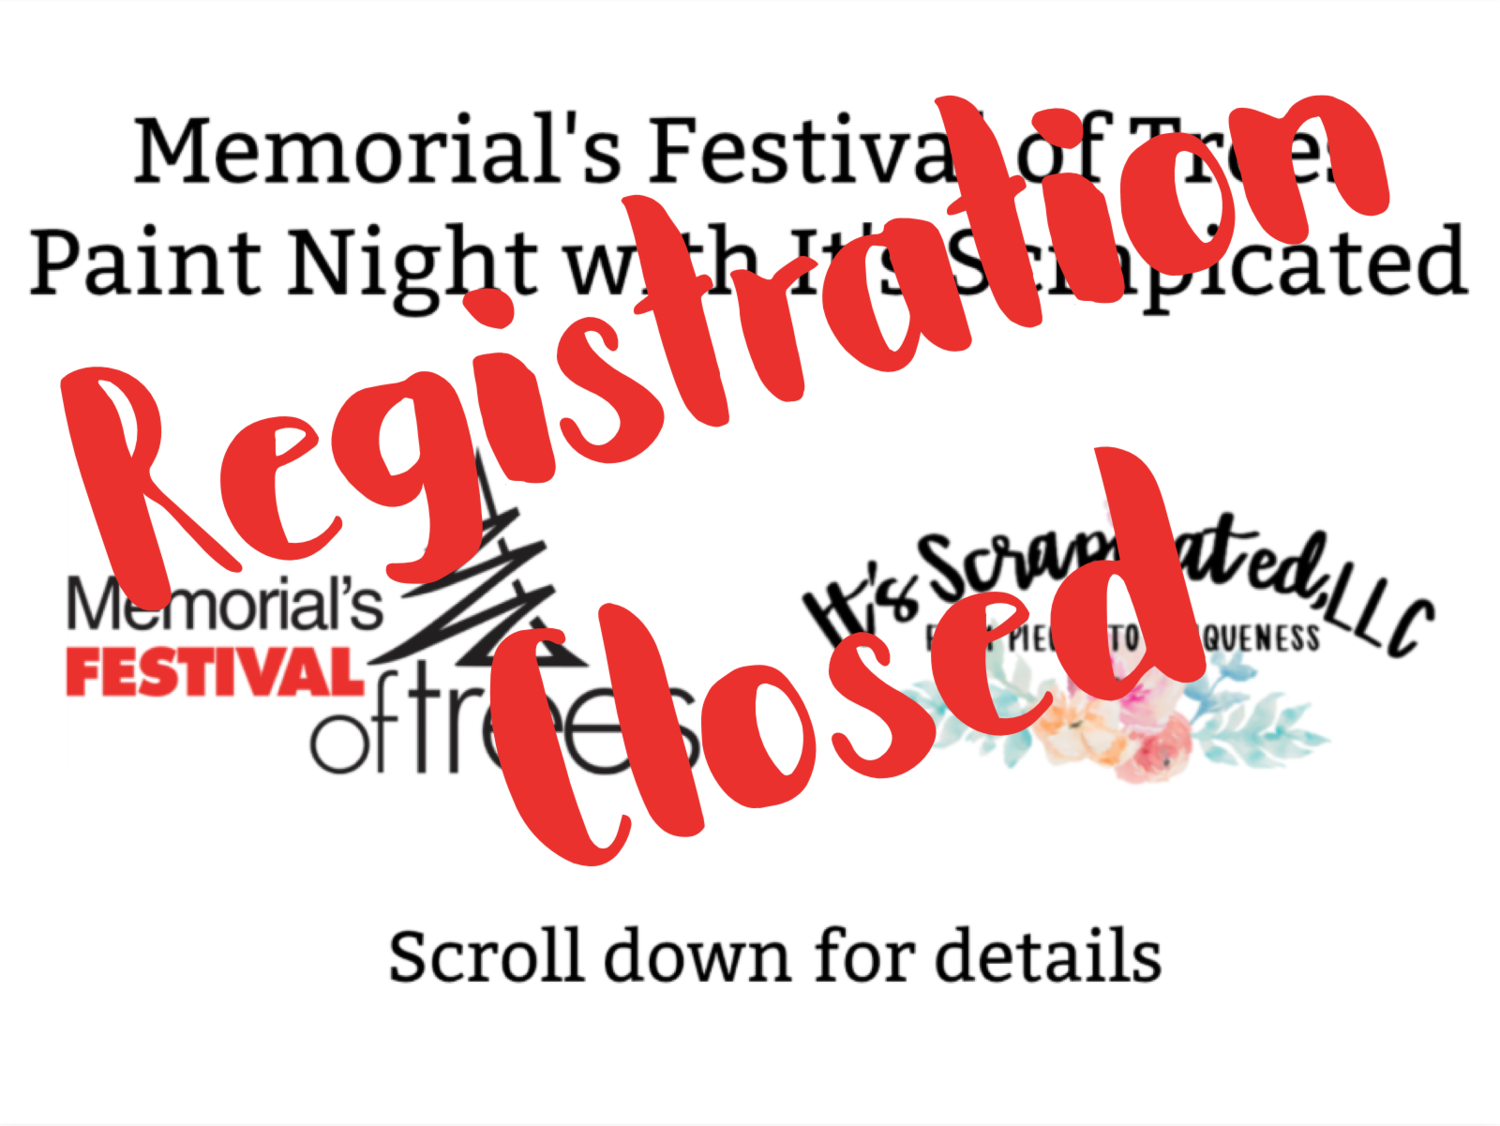 Memorial's Festival of Trees Paint Night with It's Scrapicated - Tuesday, Nov. 13, 2018 (4:30 p.m. - 8:30 p.m)